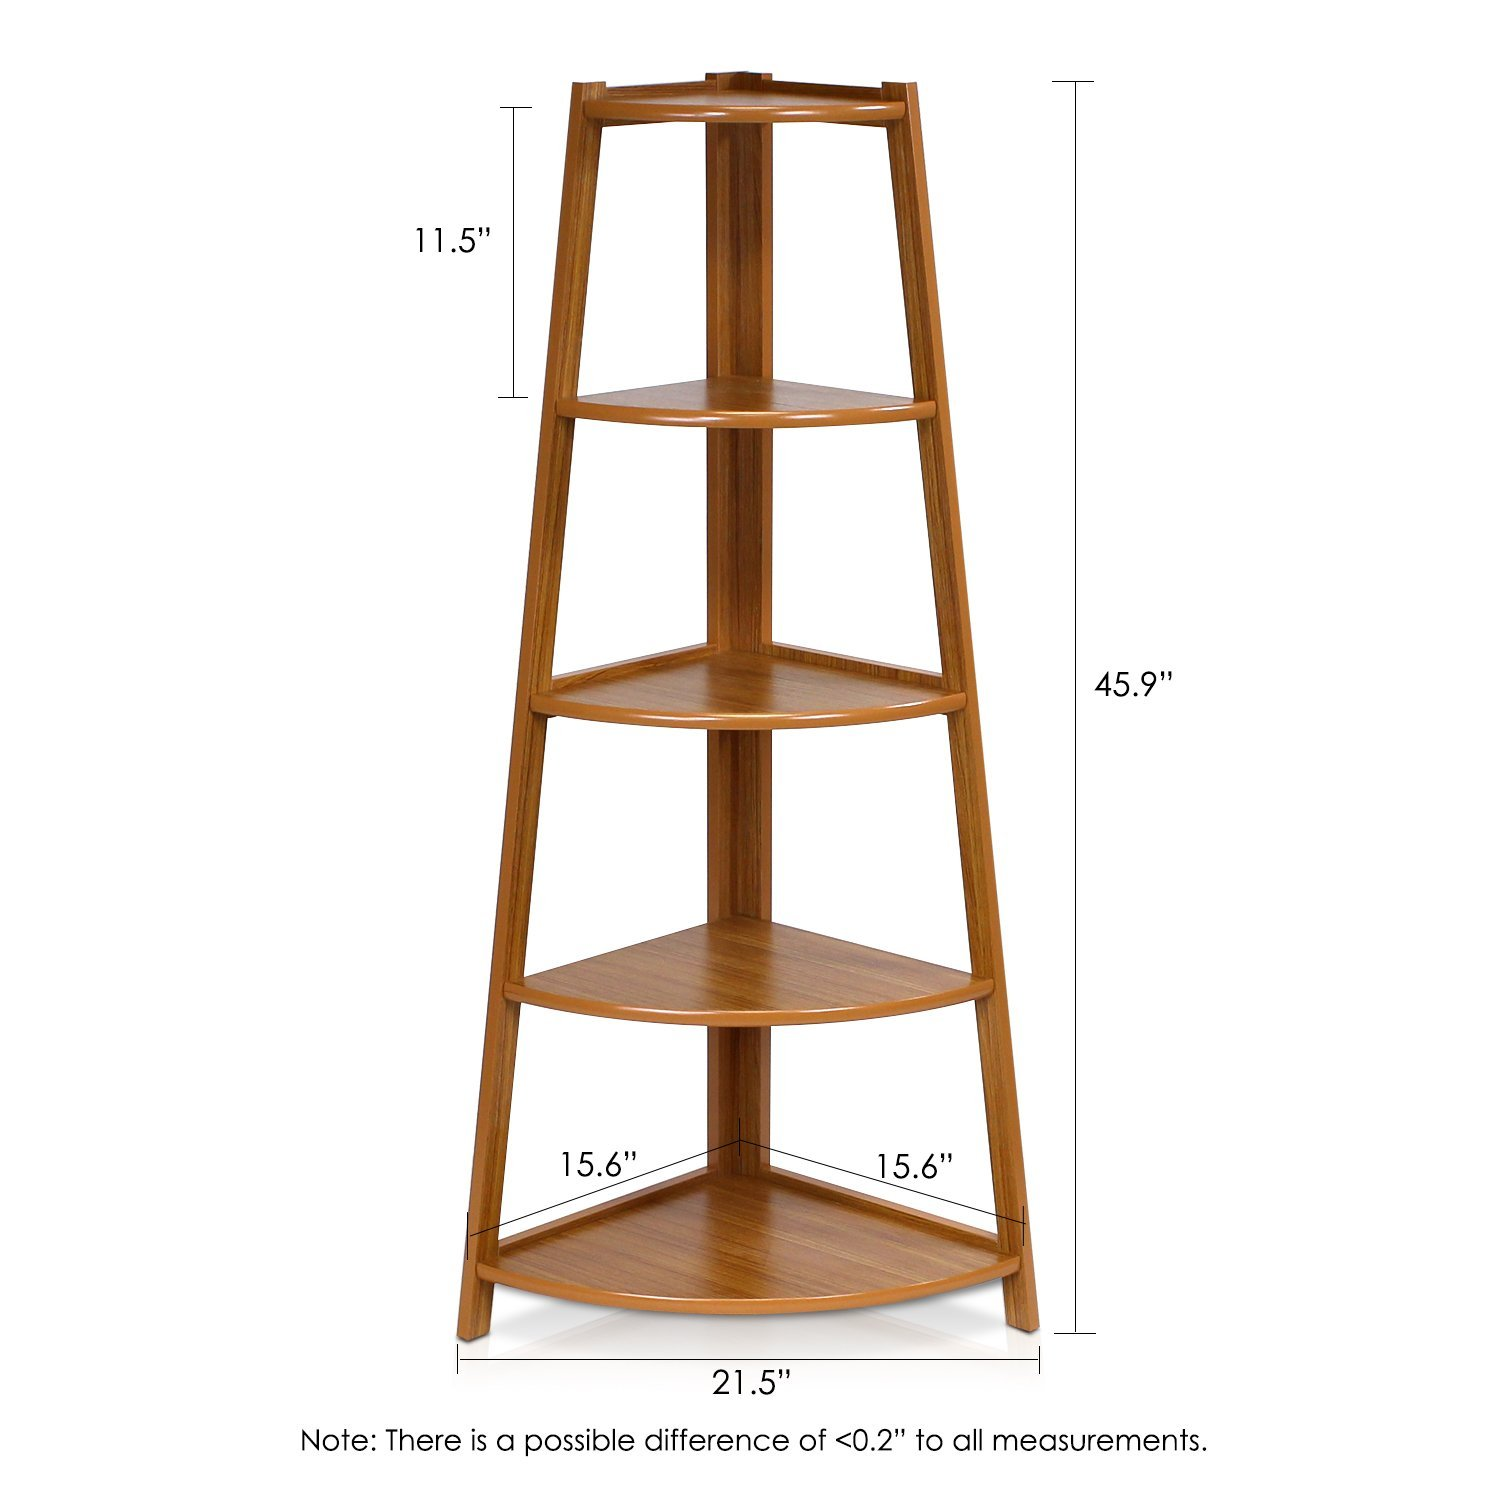 Furinno 5 Tier Corner Ladder Shelving Unit – Cherry Color-Review